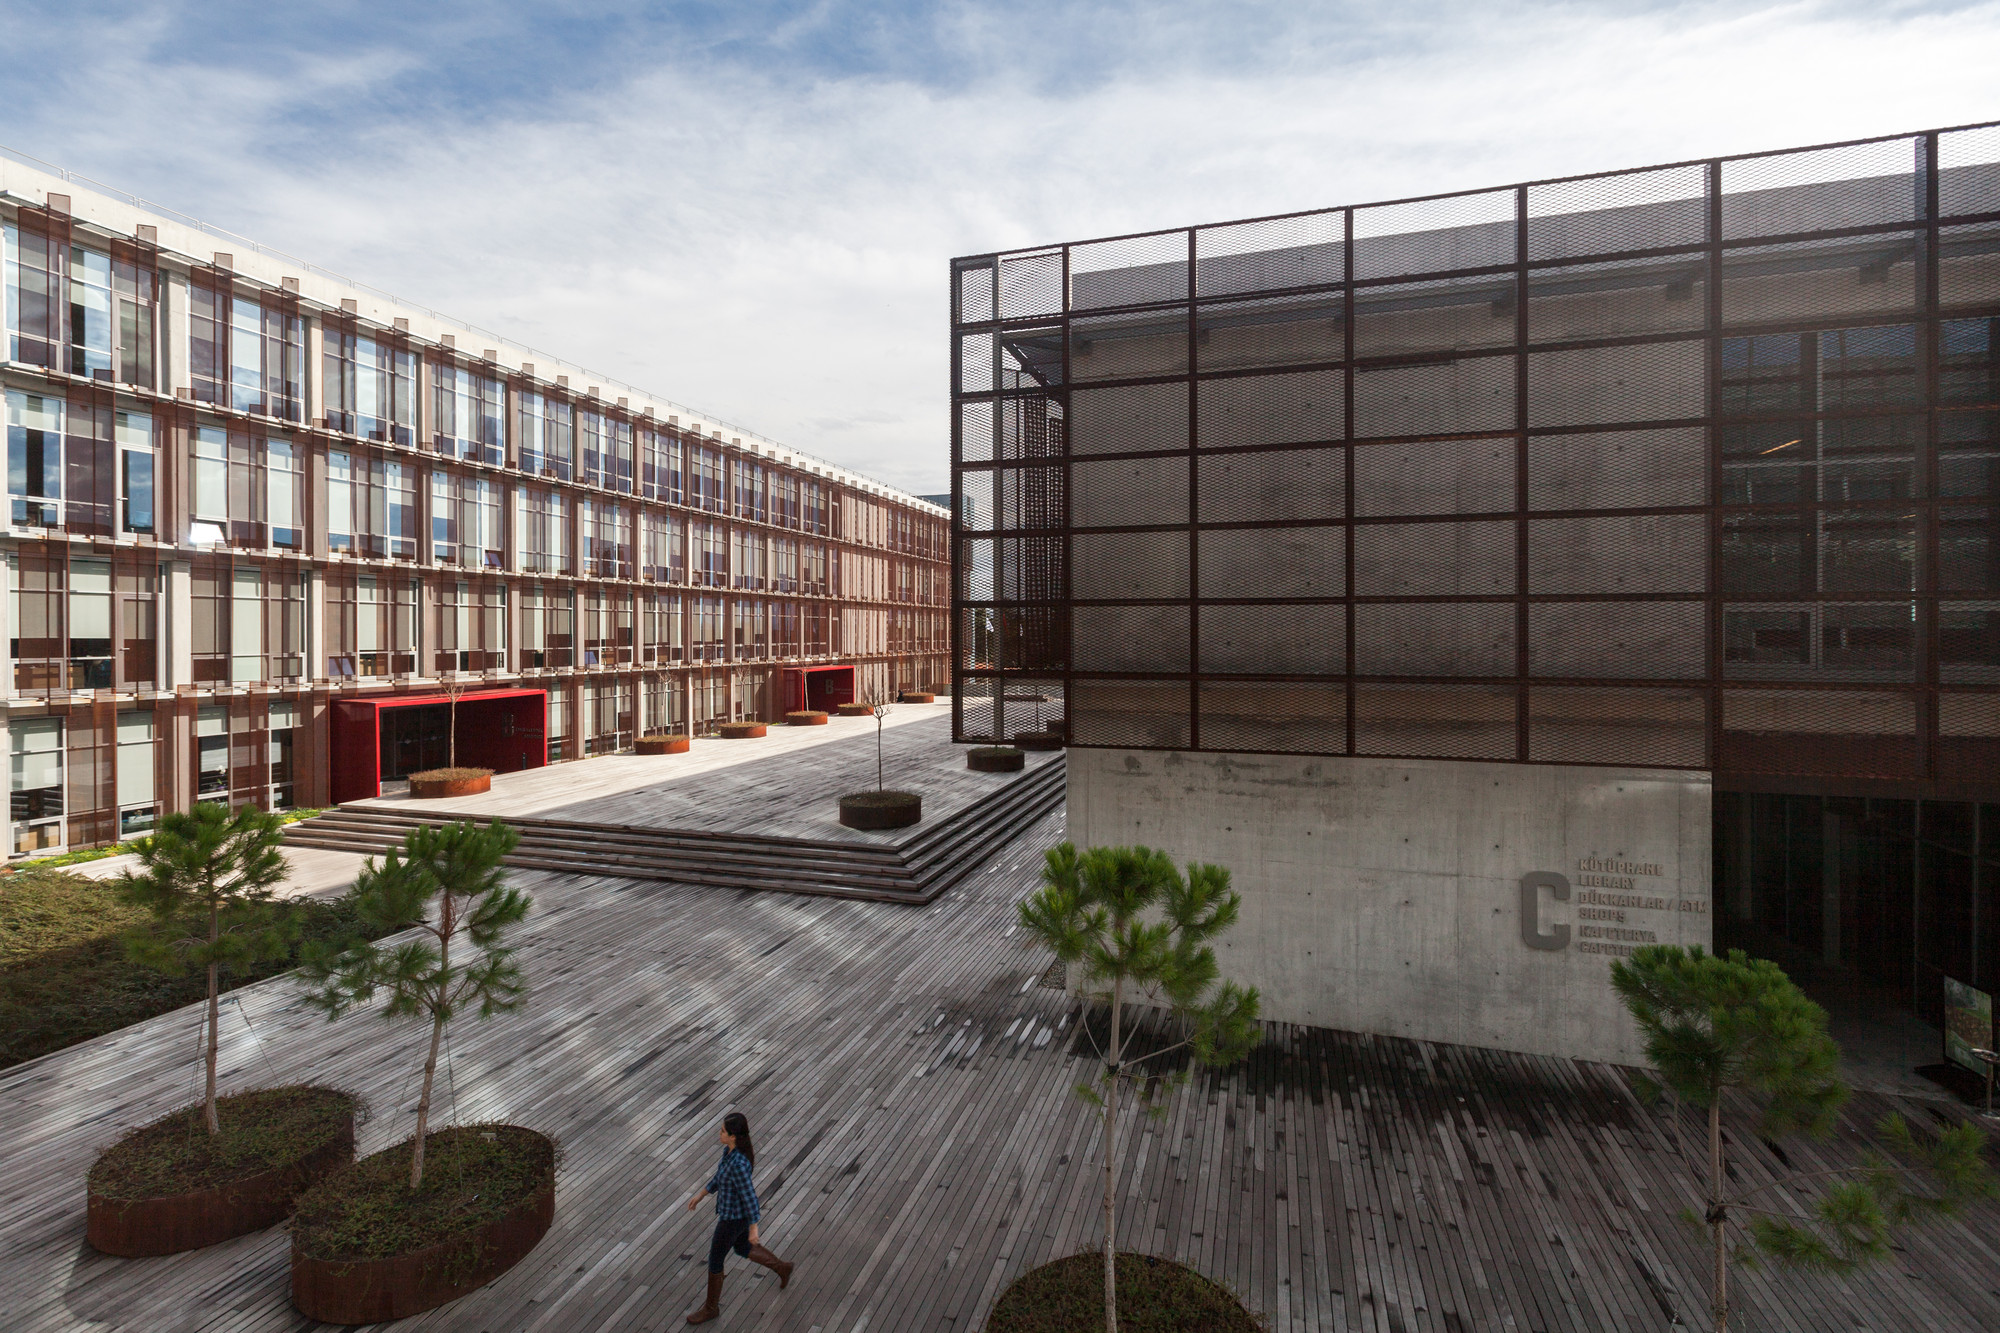 Piri Reis Maritime University  / Kreatif Architects, © Yercekim Photography-Omer Kanipak